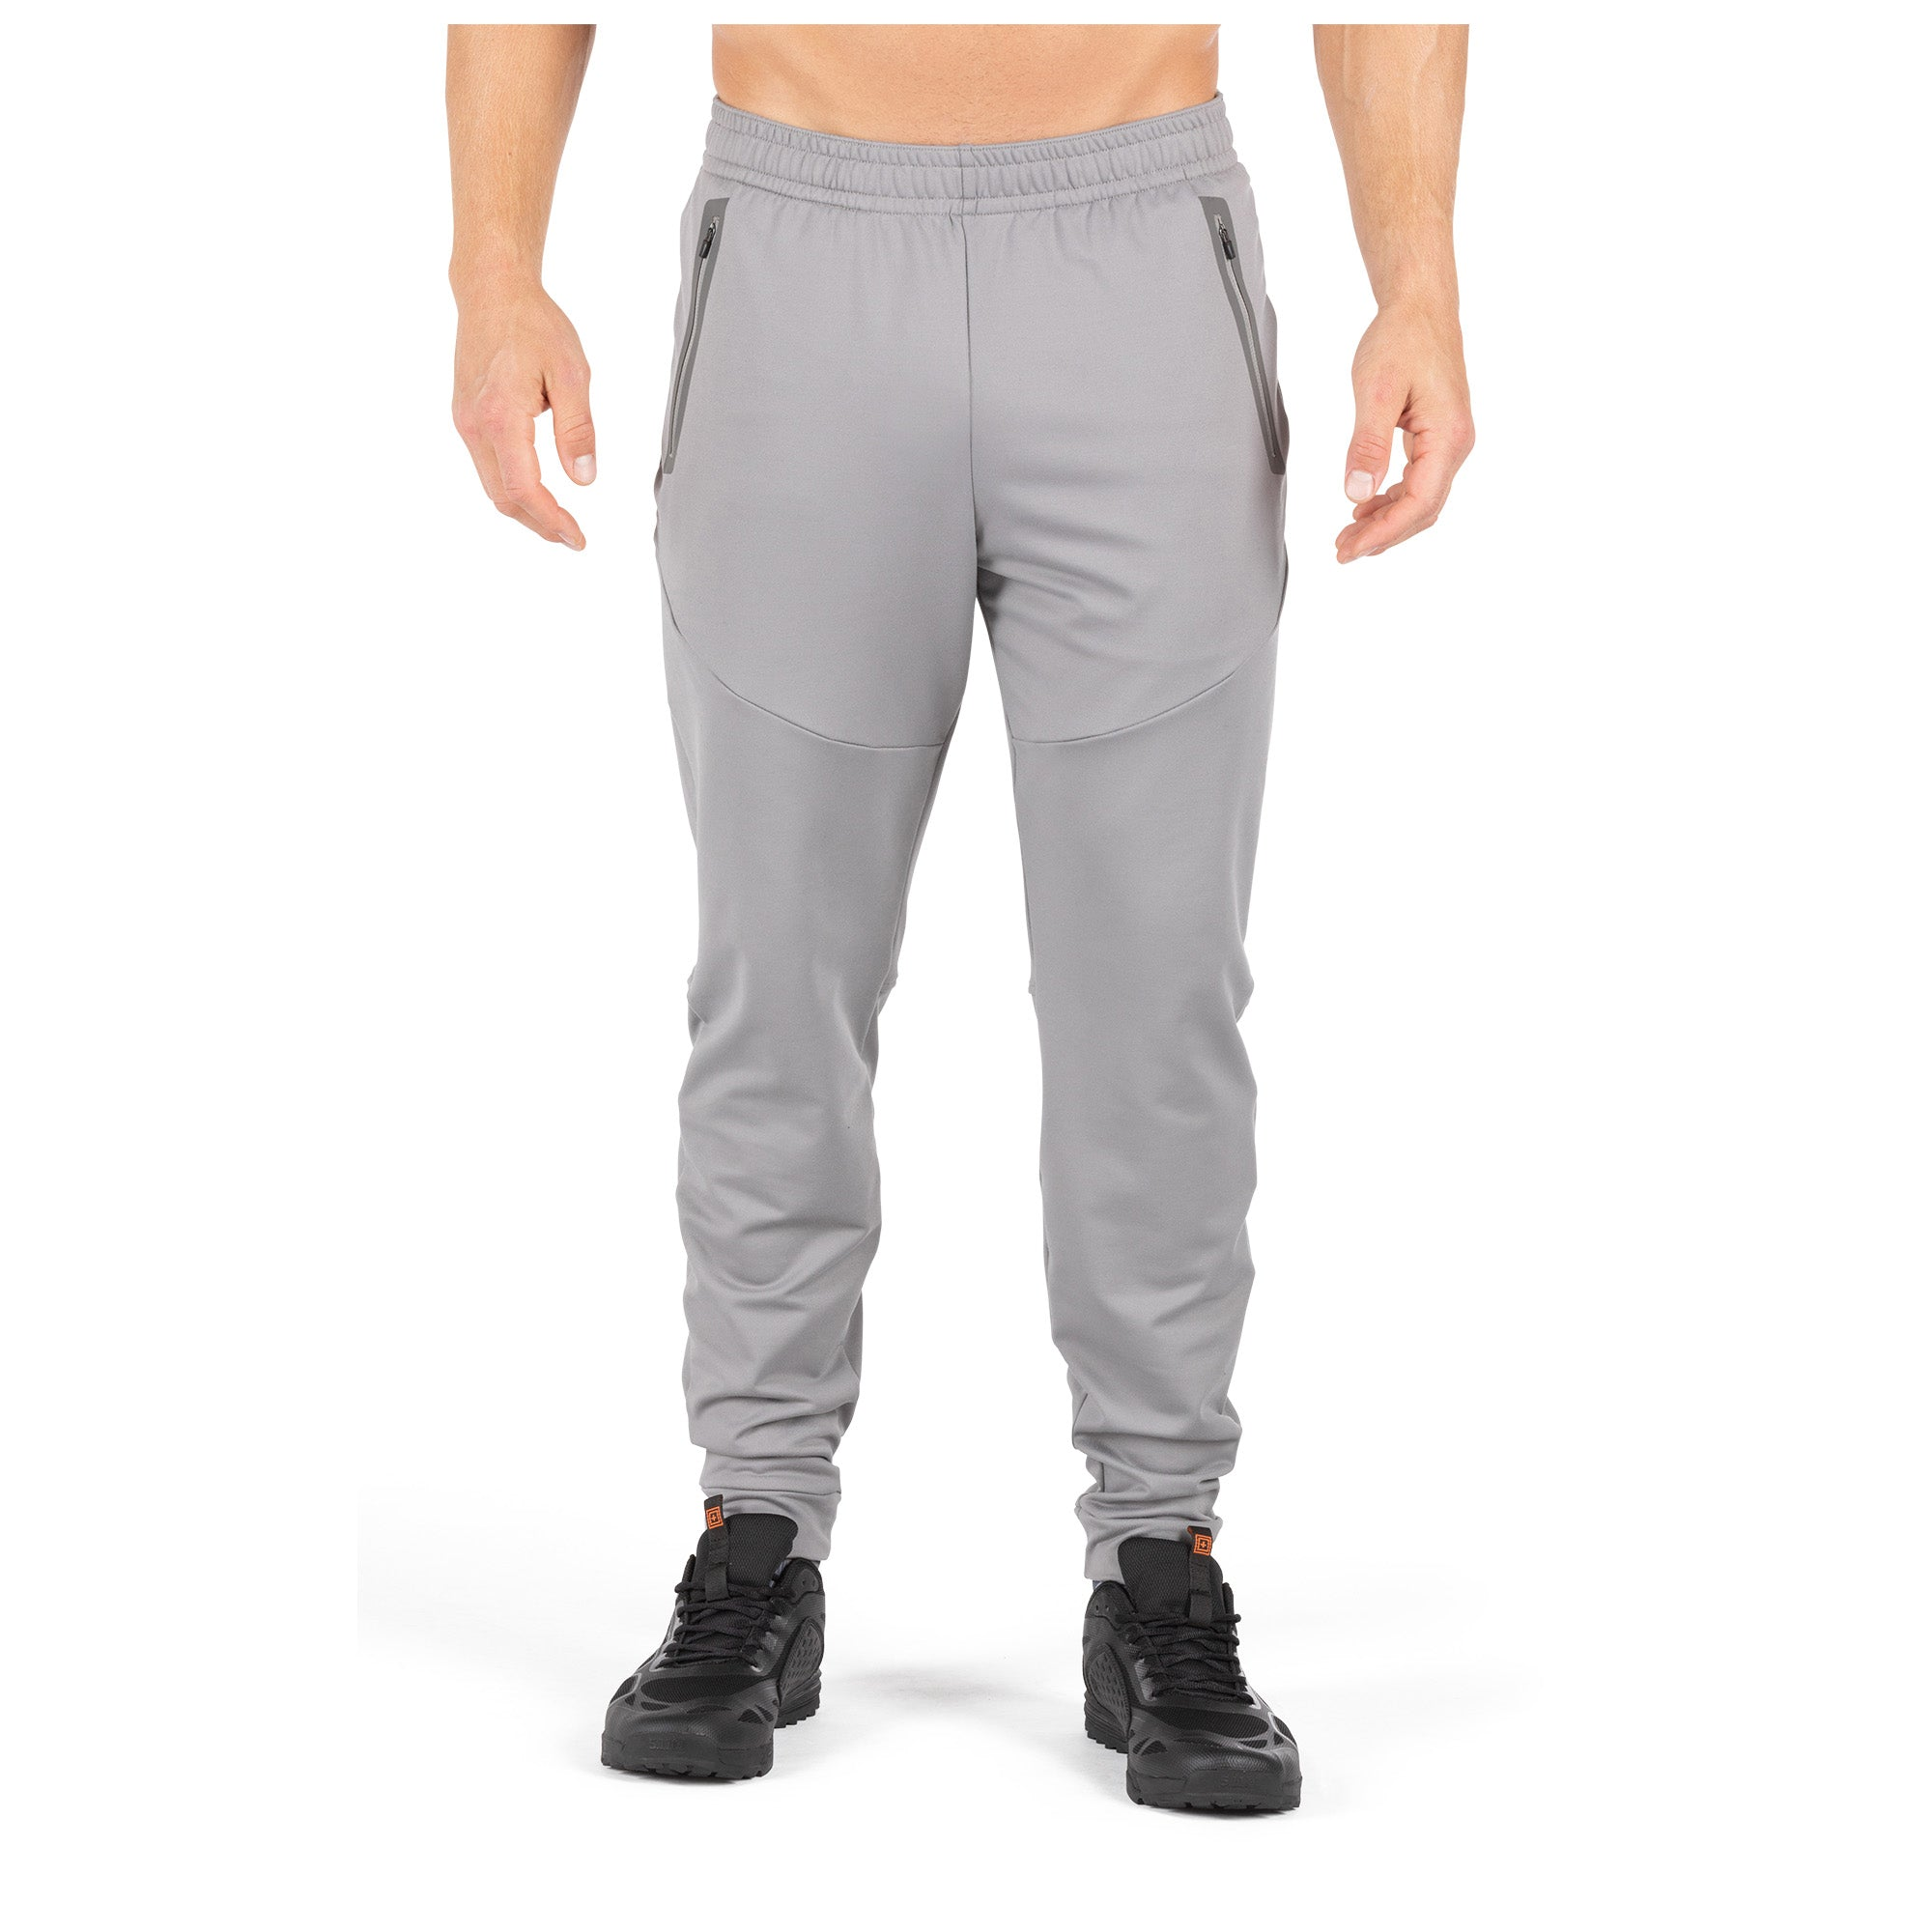 82405 5.11 RECON® POWER TRACK PANT